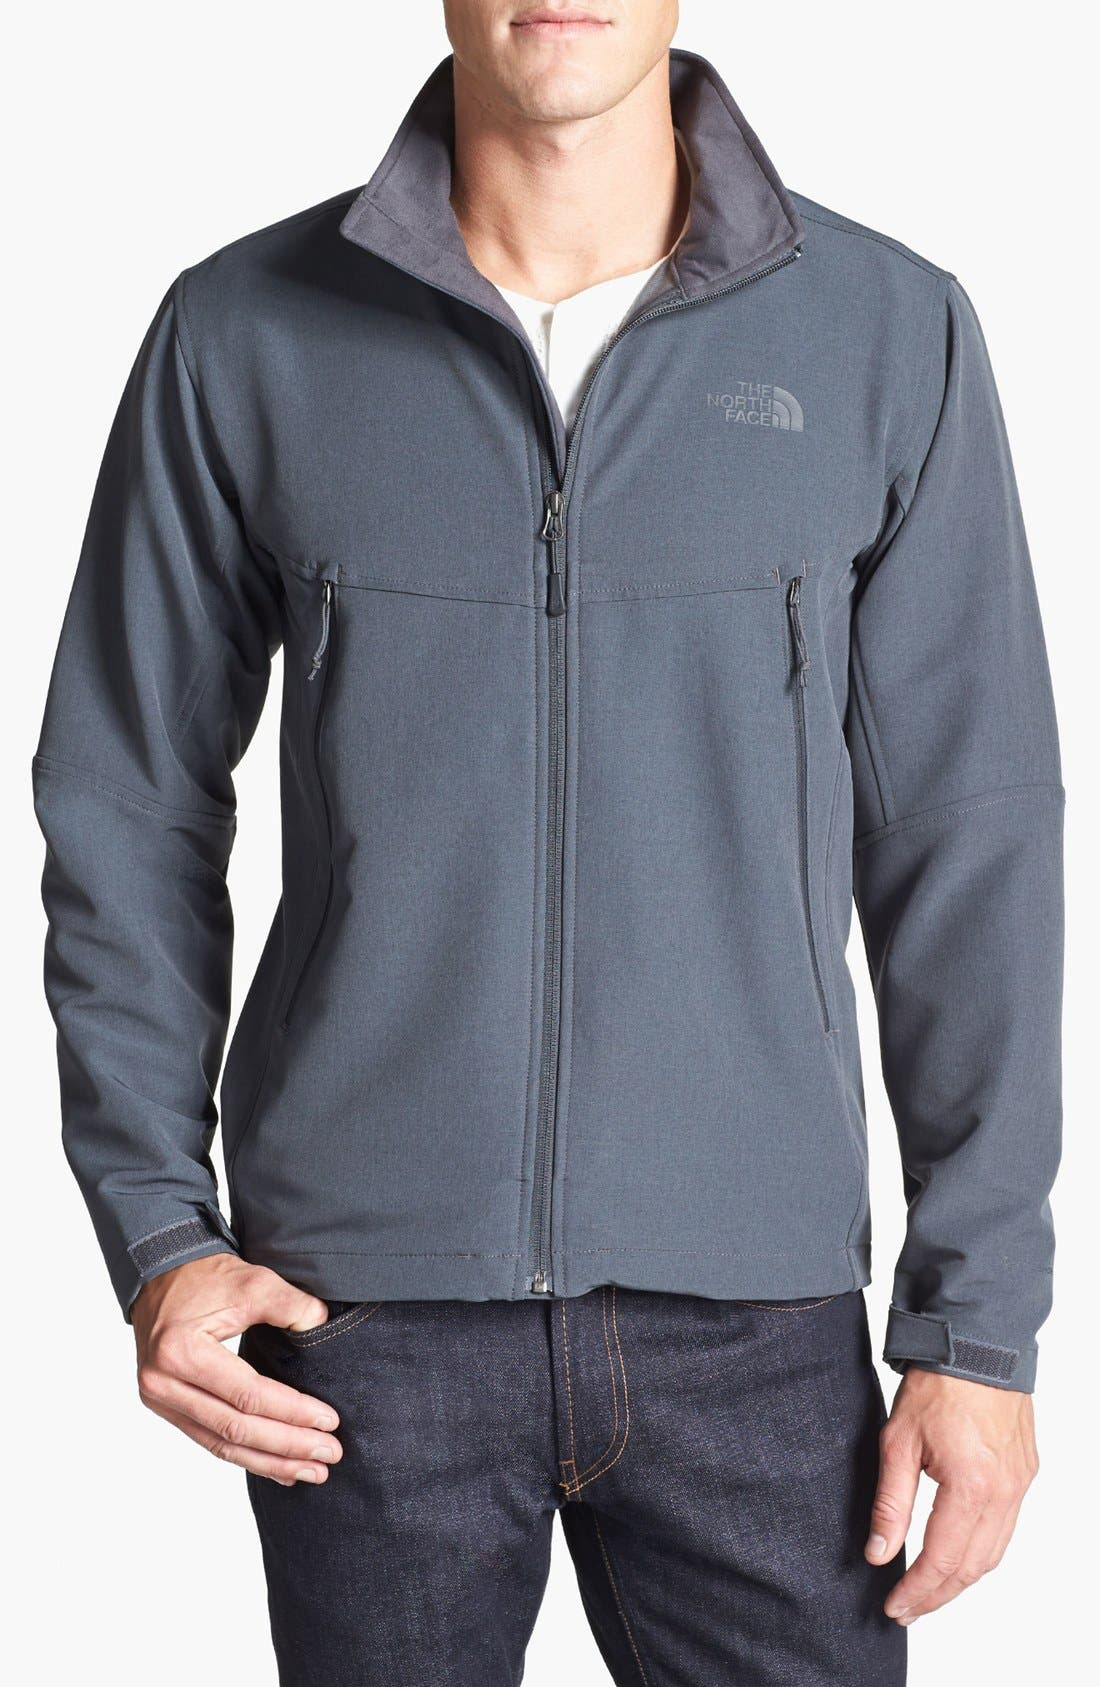 Alternate Image 1 Selected - The North Face 'RDT' FlashDry™ Softshell Jacket